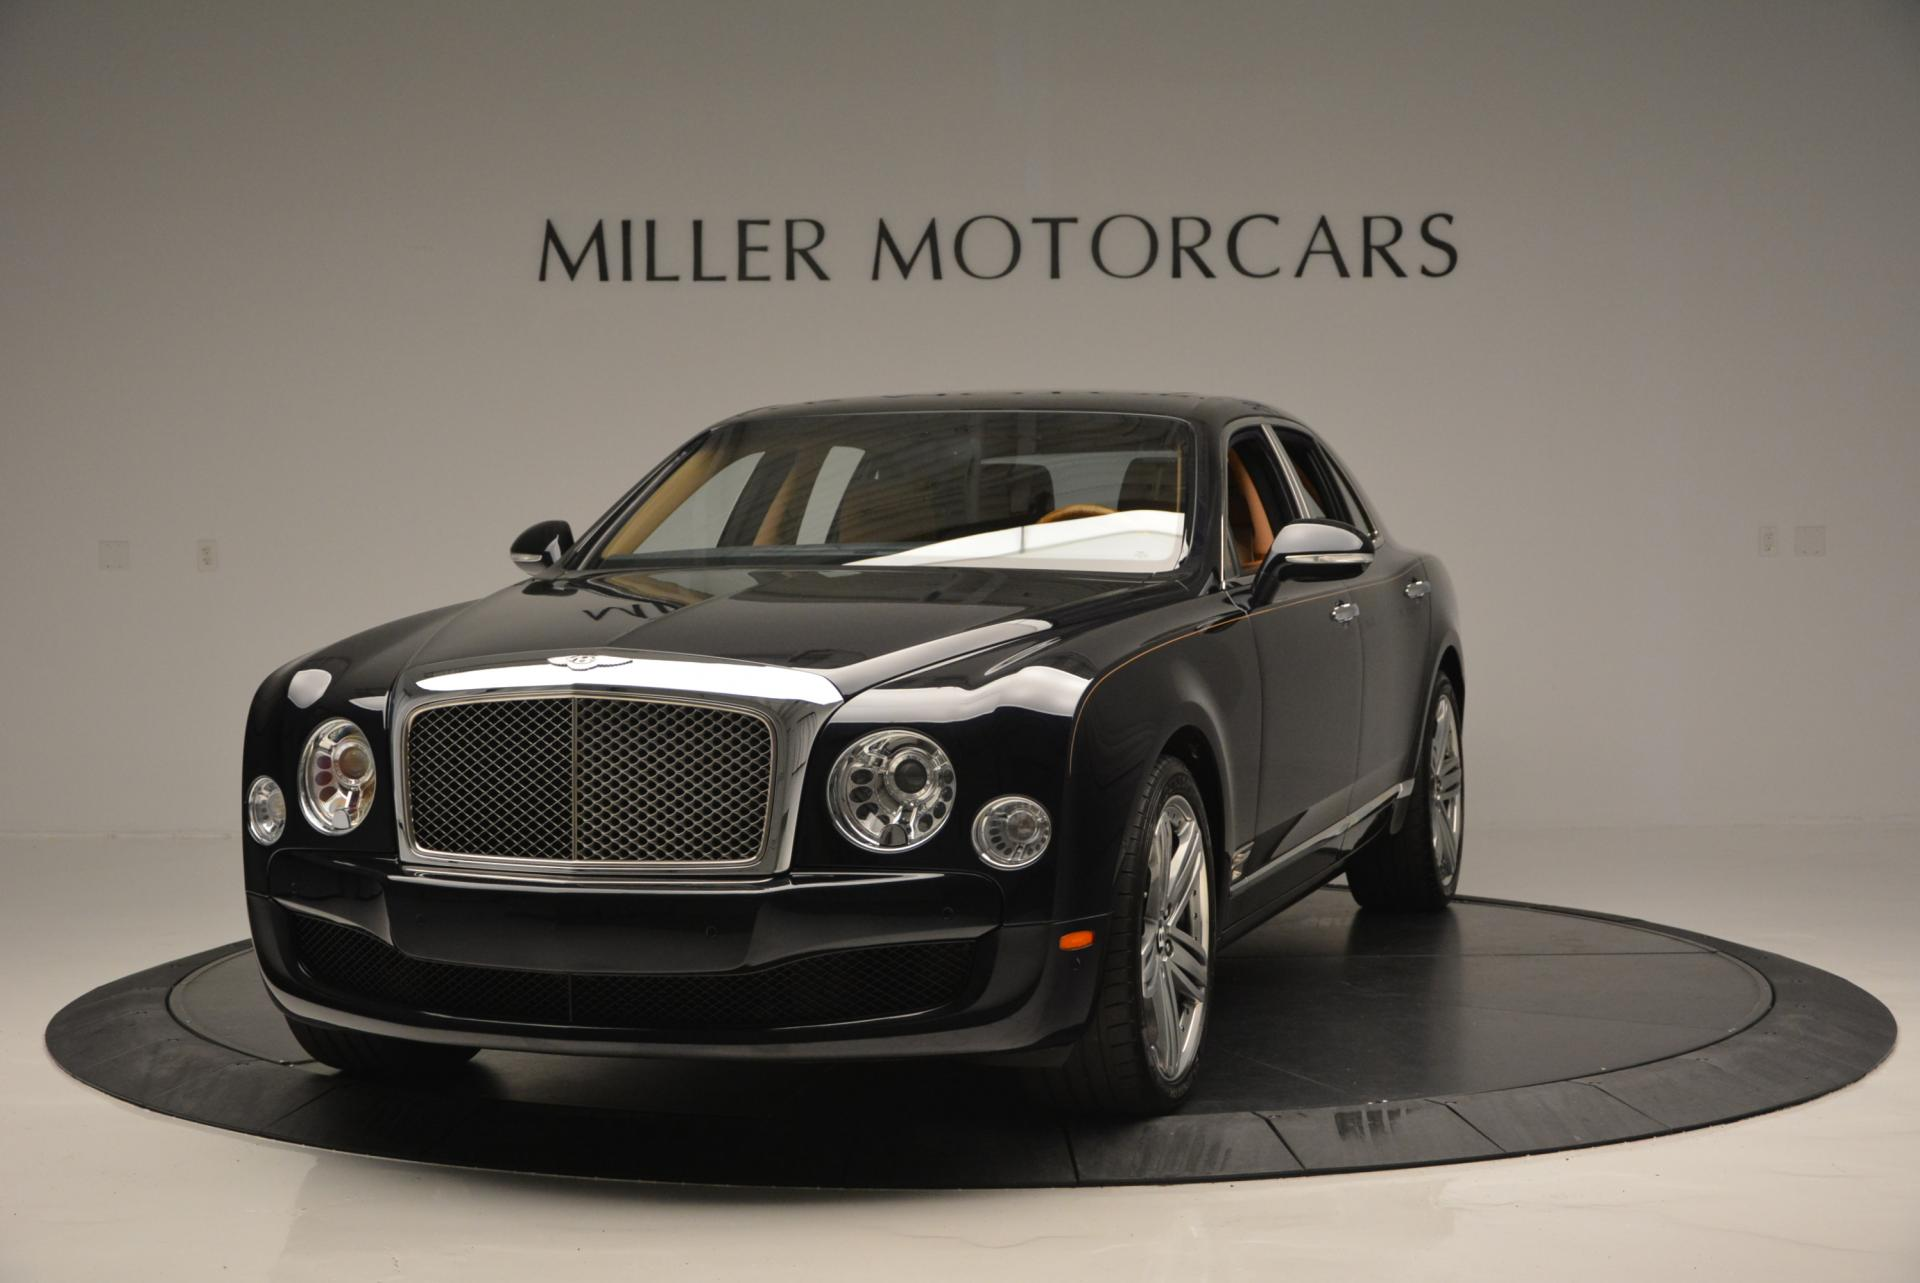 Used 2013 Bentley Mulsanne Le Mans Edition- Number 1 of 48 for sale Sold at Rolls-Royce Motor Cars Greenwich in Greenwich CT 06830 1